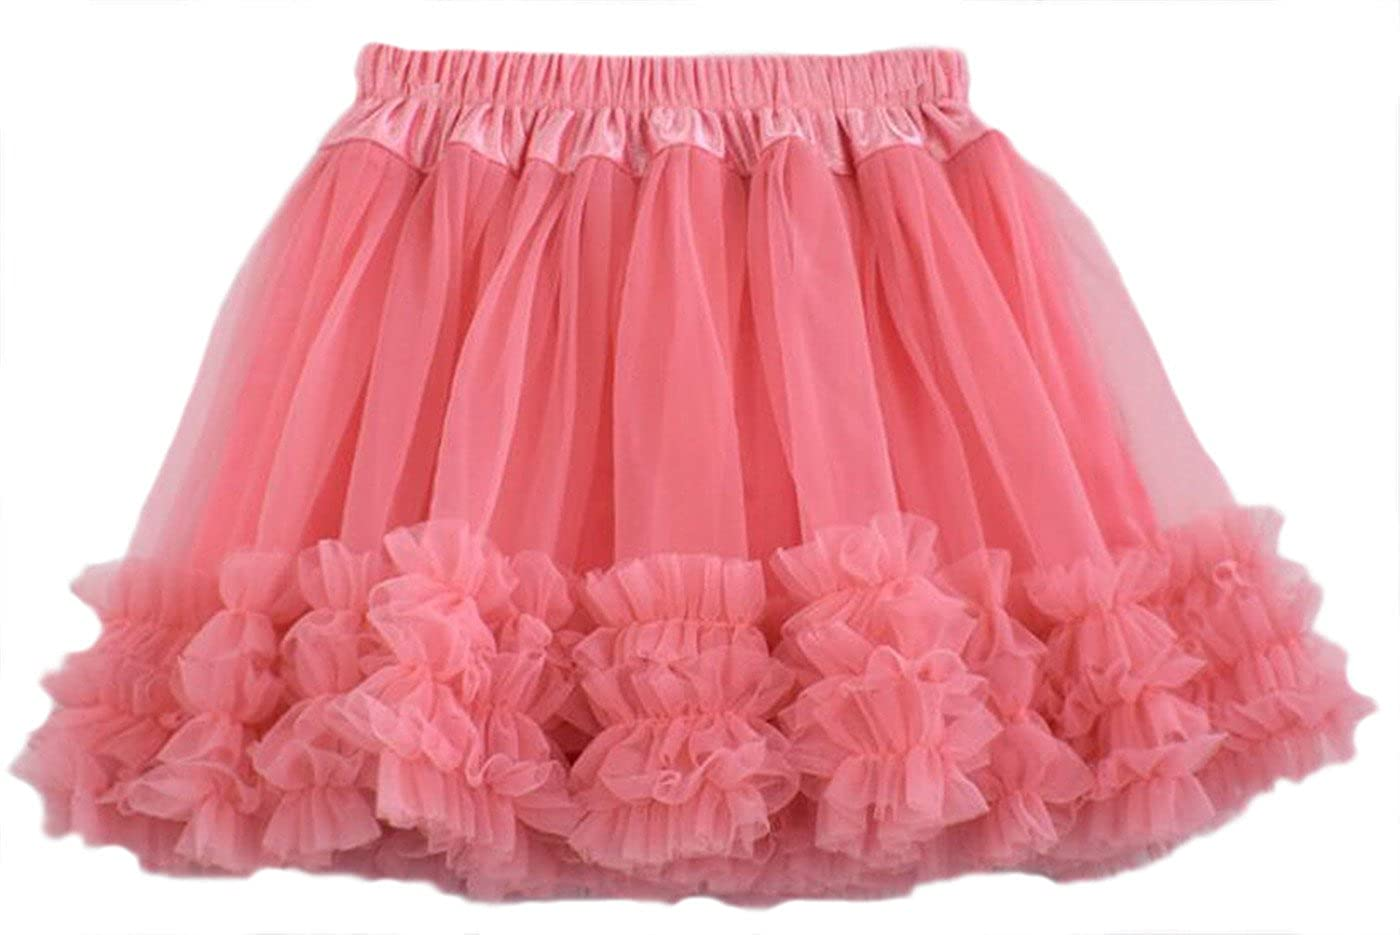 Youngate Little Girl Fluffy Pettiskirt Tutu Party Pleated Tulle Bubble Skirts